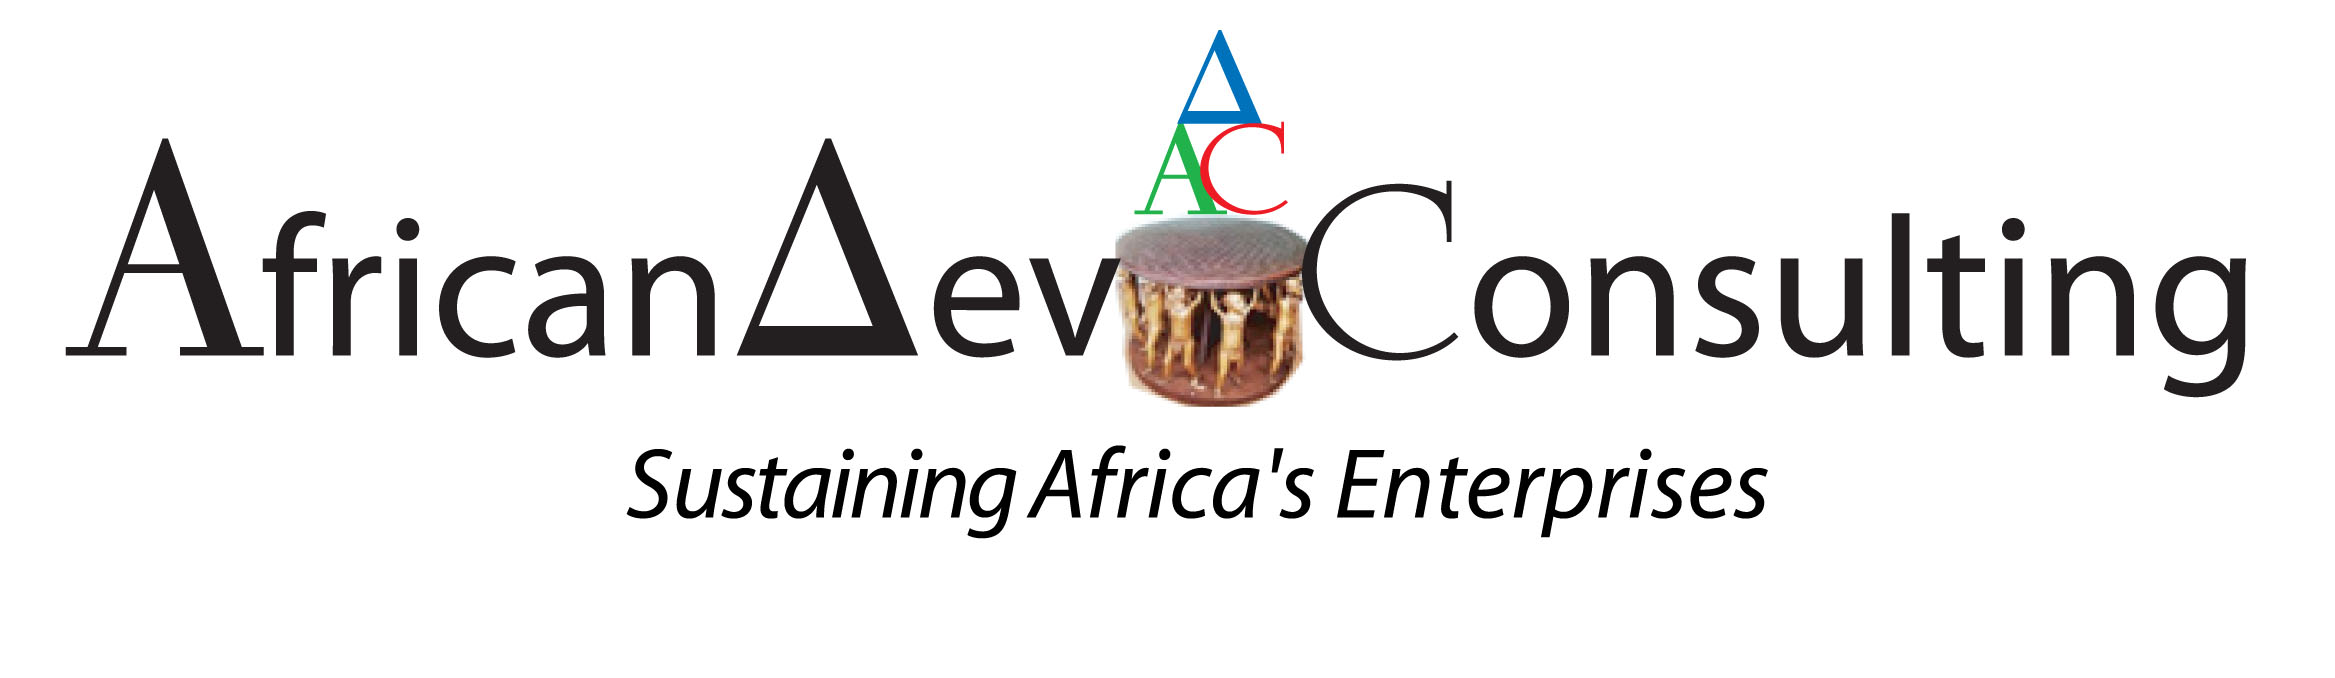 AfricanDev Consulting - Camerún